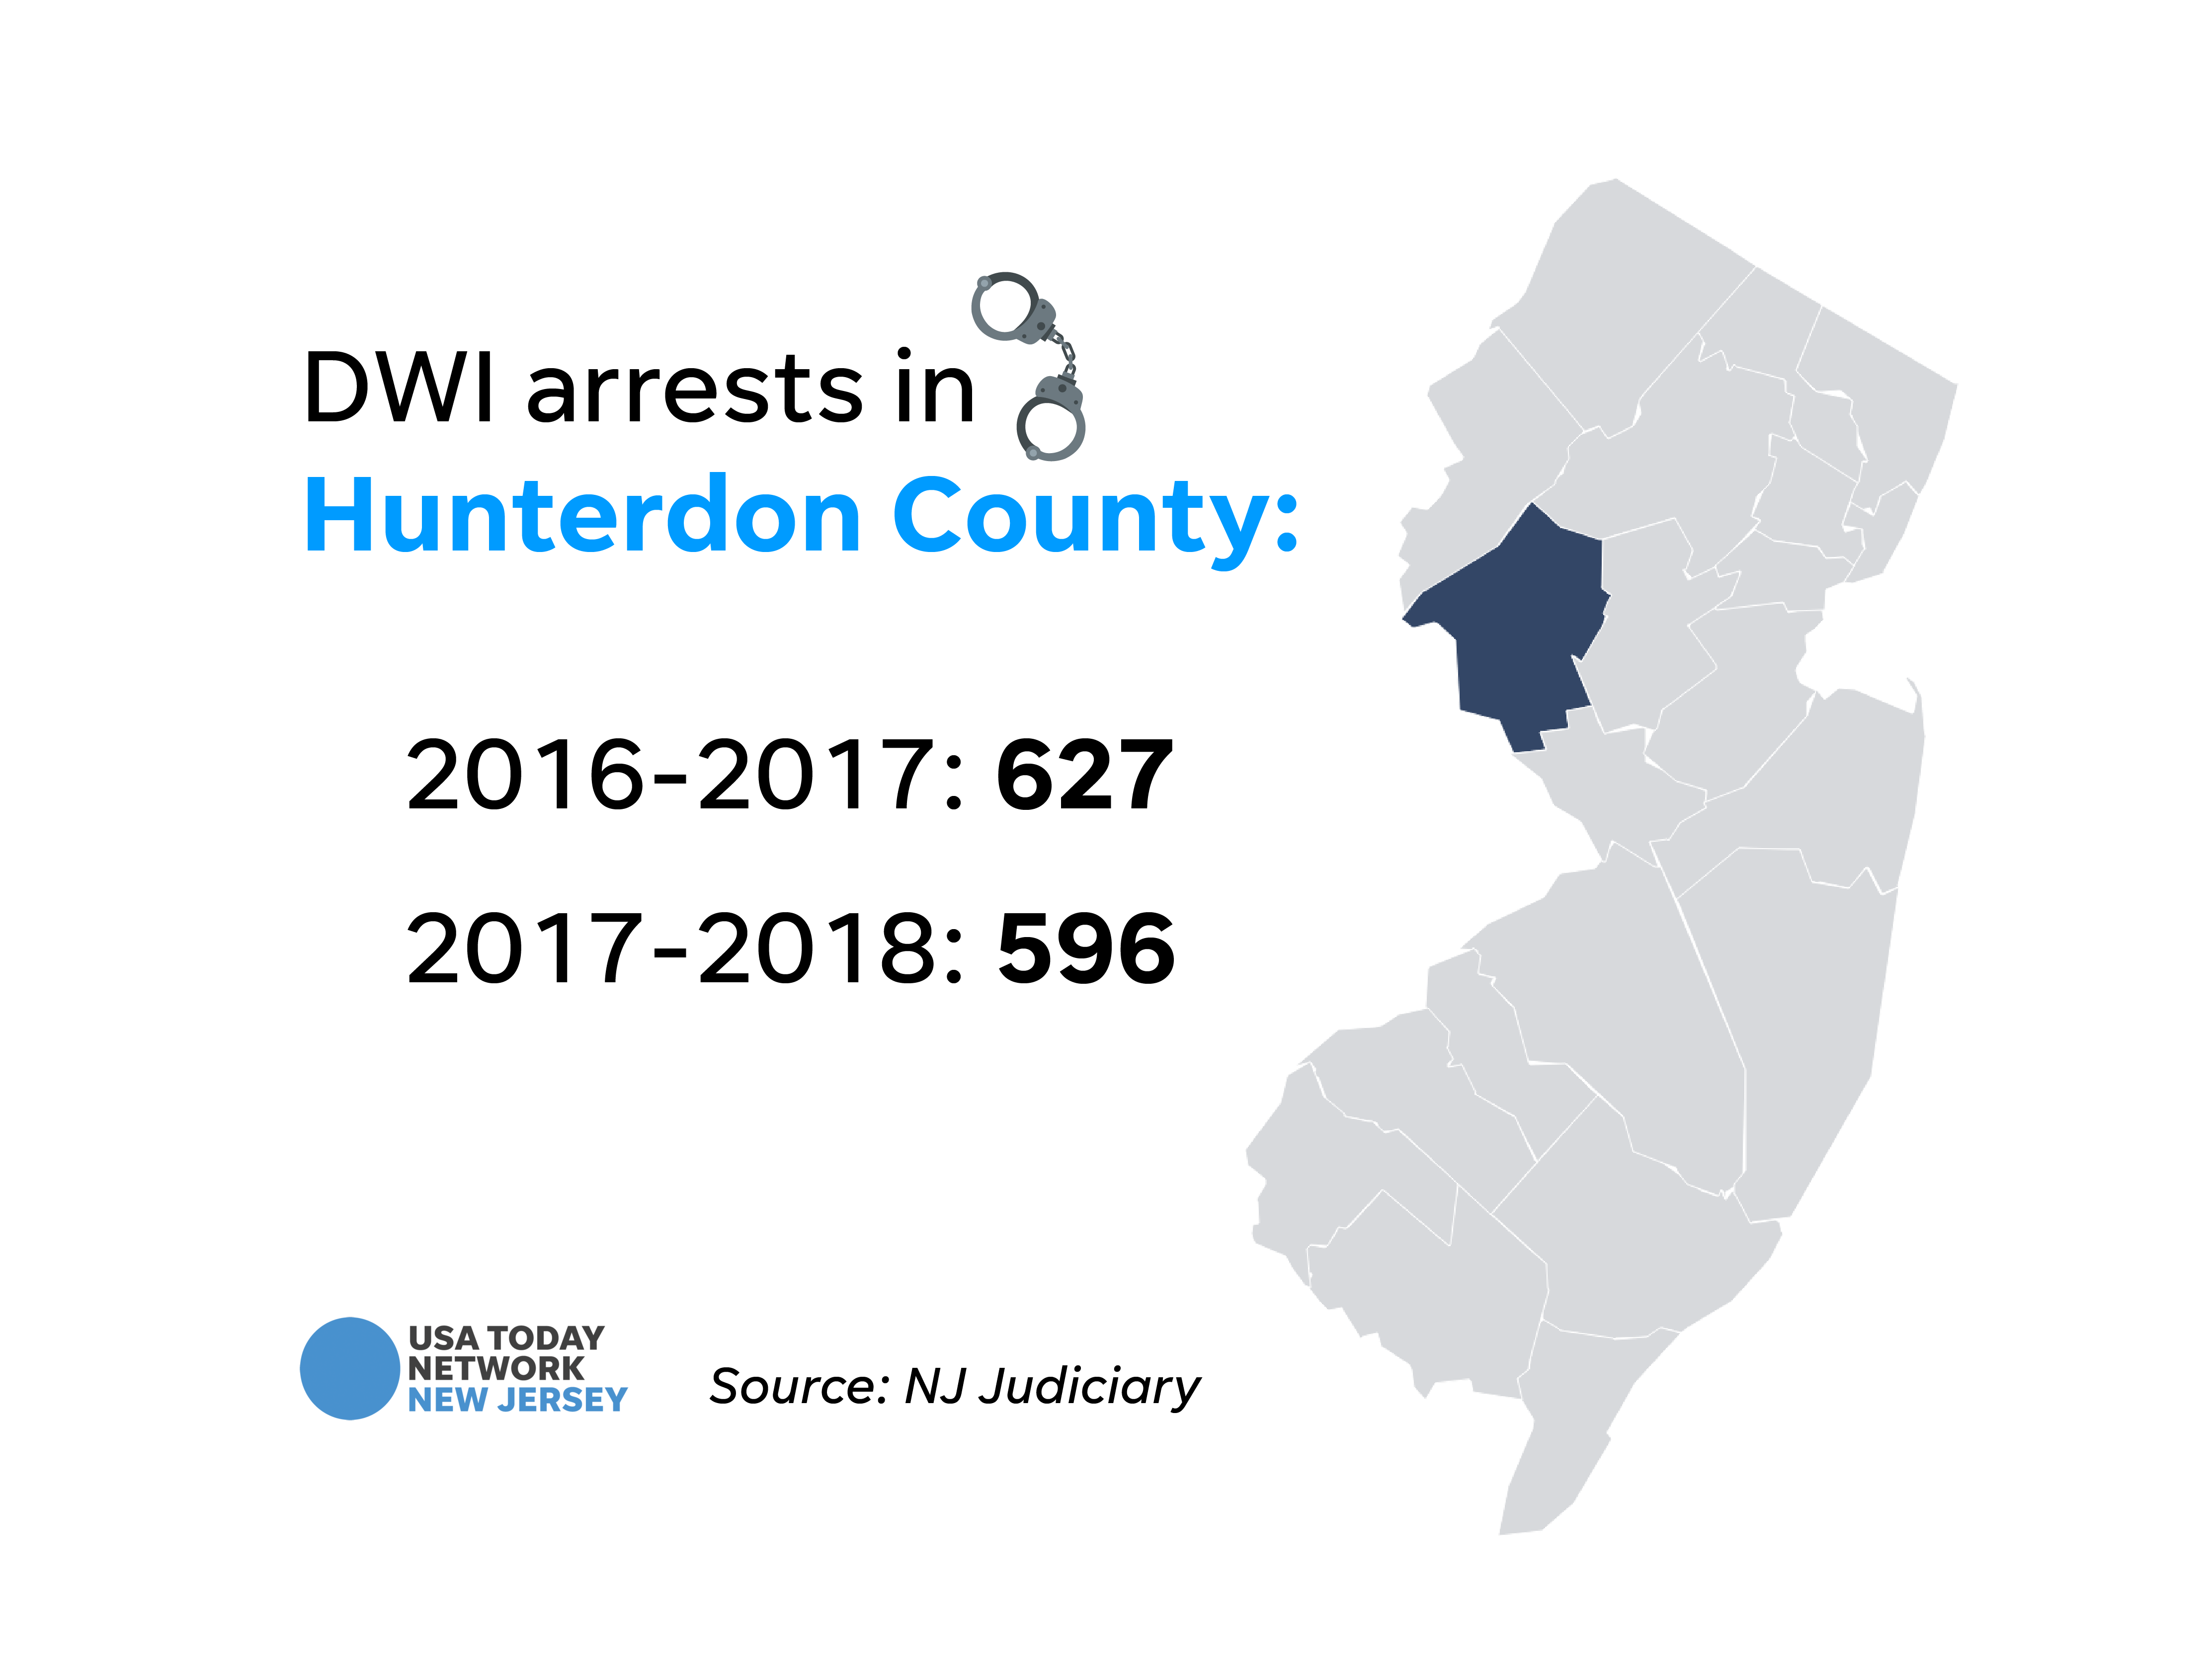 DWI arrests in Hunterdon County.